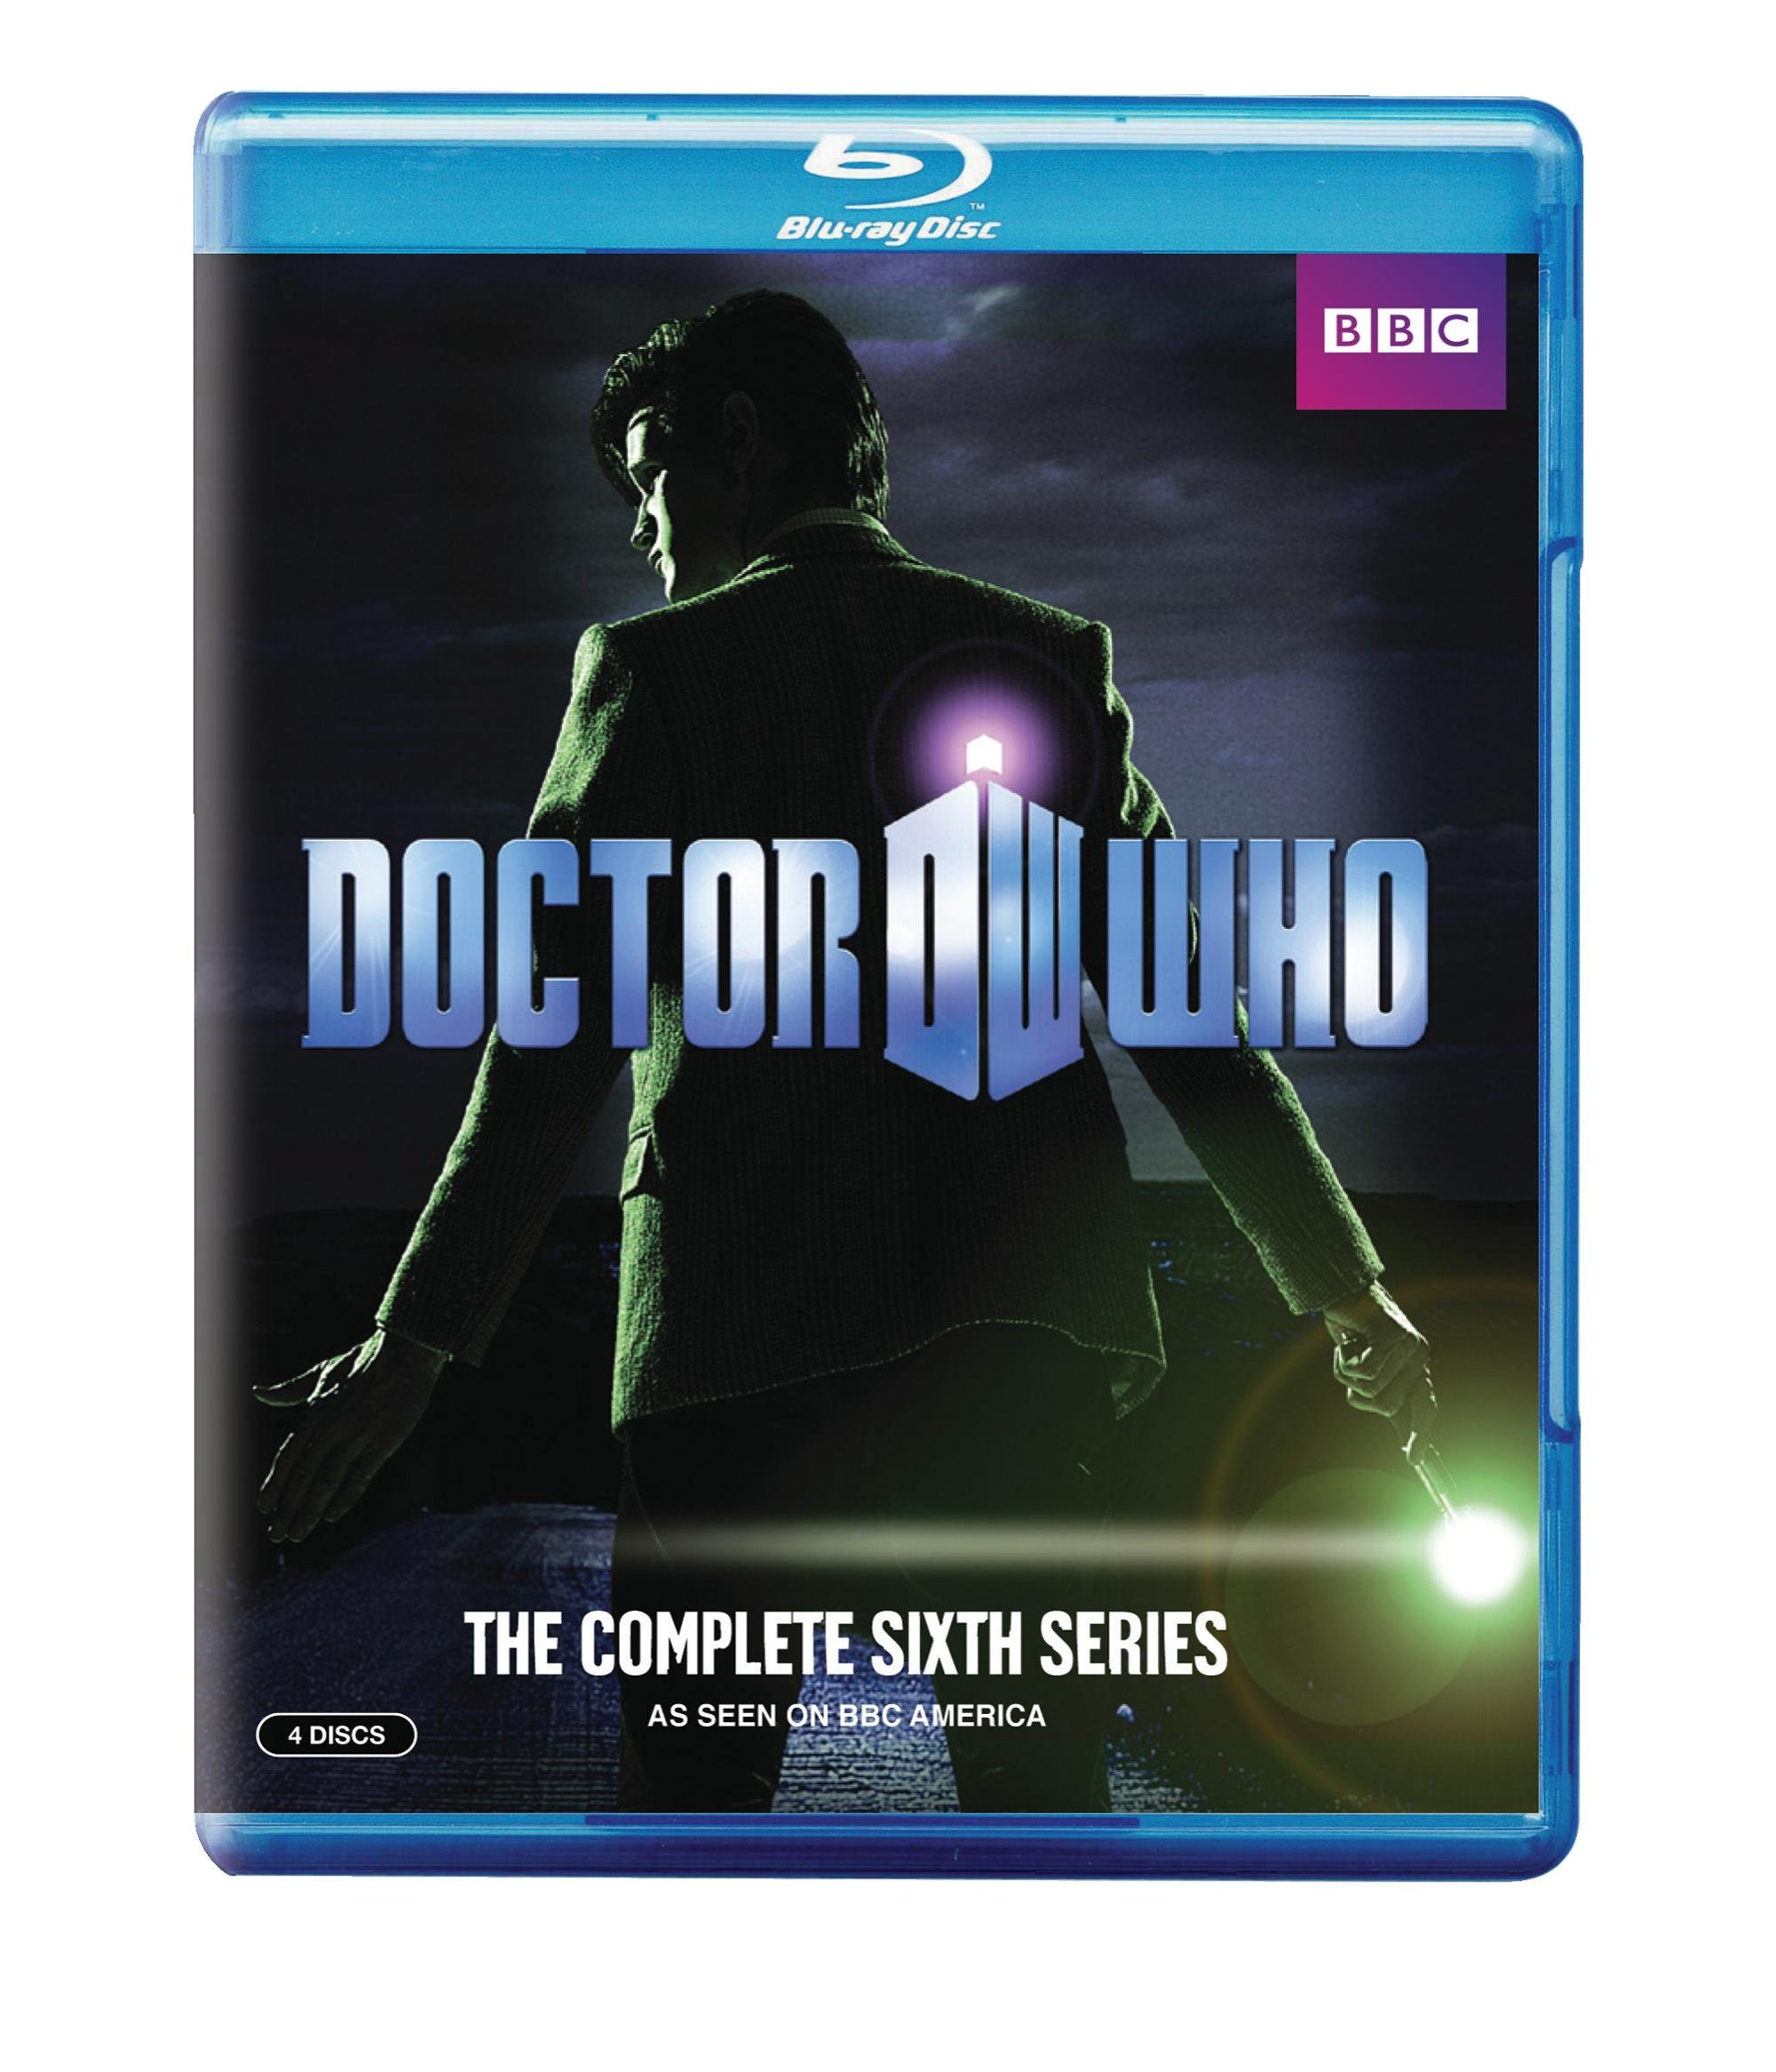 Doctor Who: The Complete Sixth Series (Blu-ray) by BBC Home Entertainment